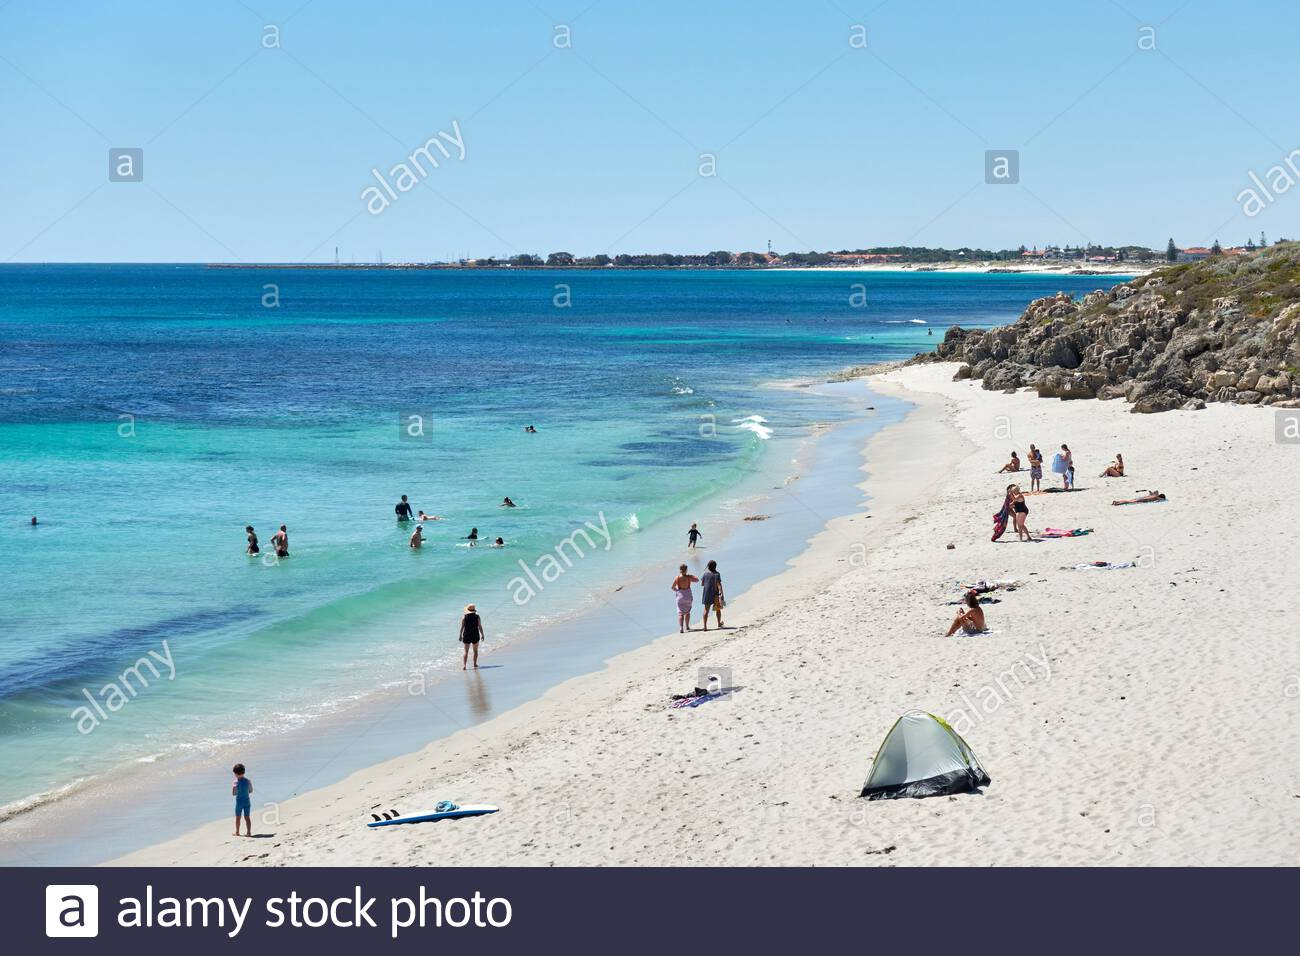 people-enjoying-the-ocean-at-watermans-beach-on-a-hot-summers-day-in-the-perth-suburb-of-watermans-bay-western-australia-2E1XJR5.jpg